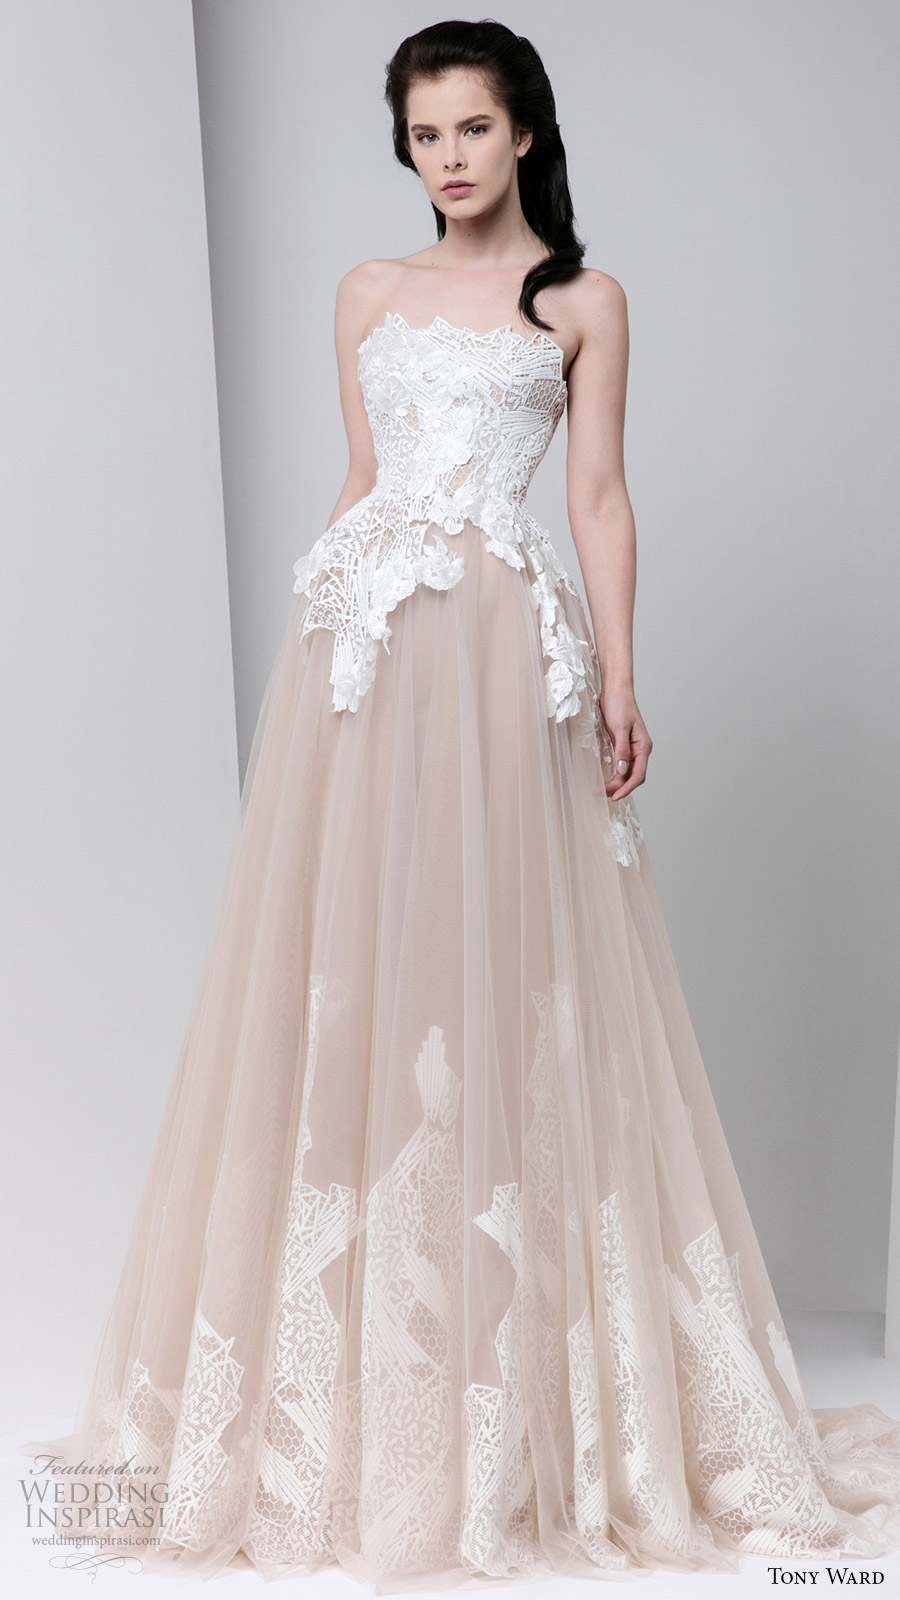 tony ward fall winter 2016 2017 rtw strapless ball gown off white evening dress wedding inspiration